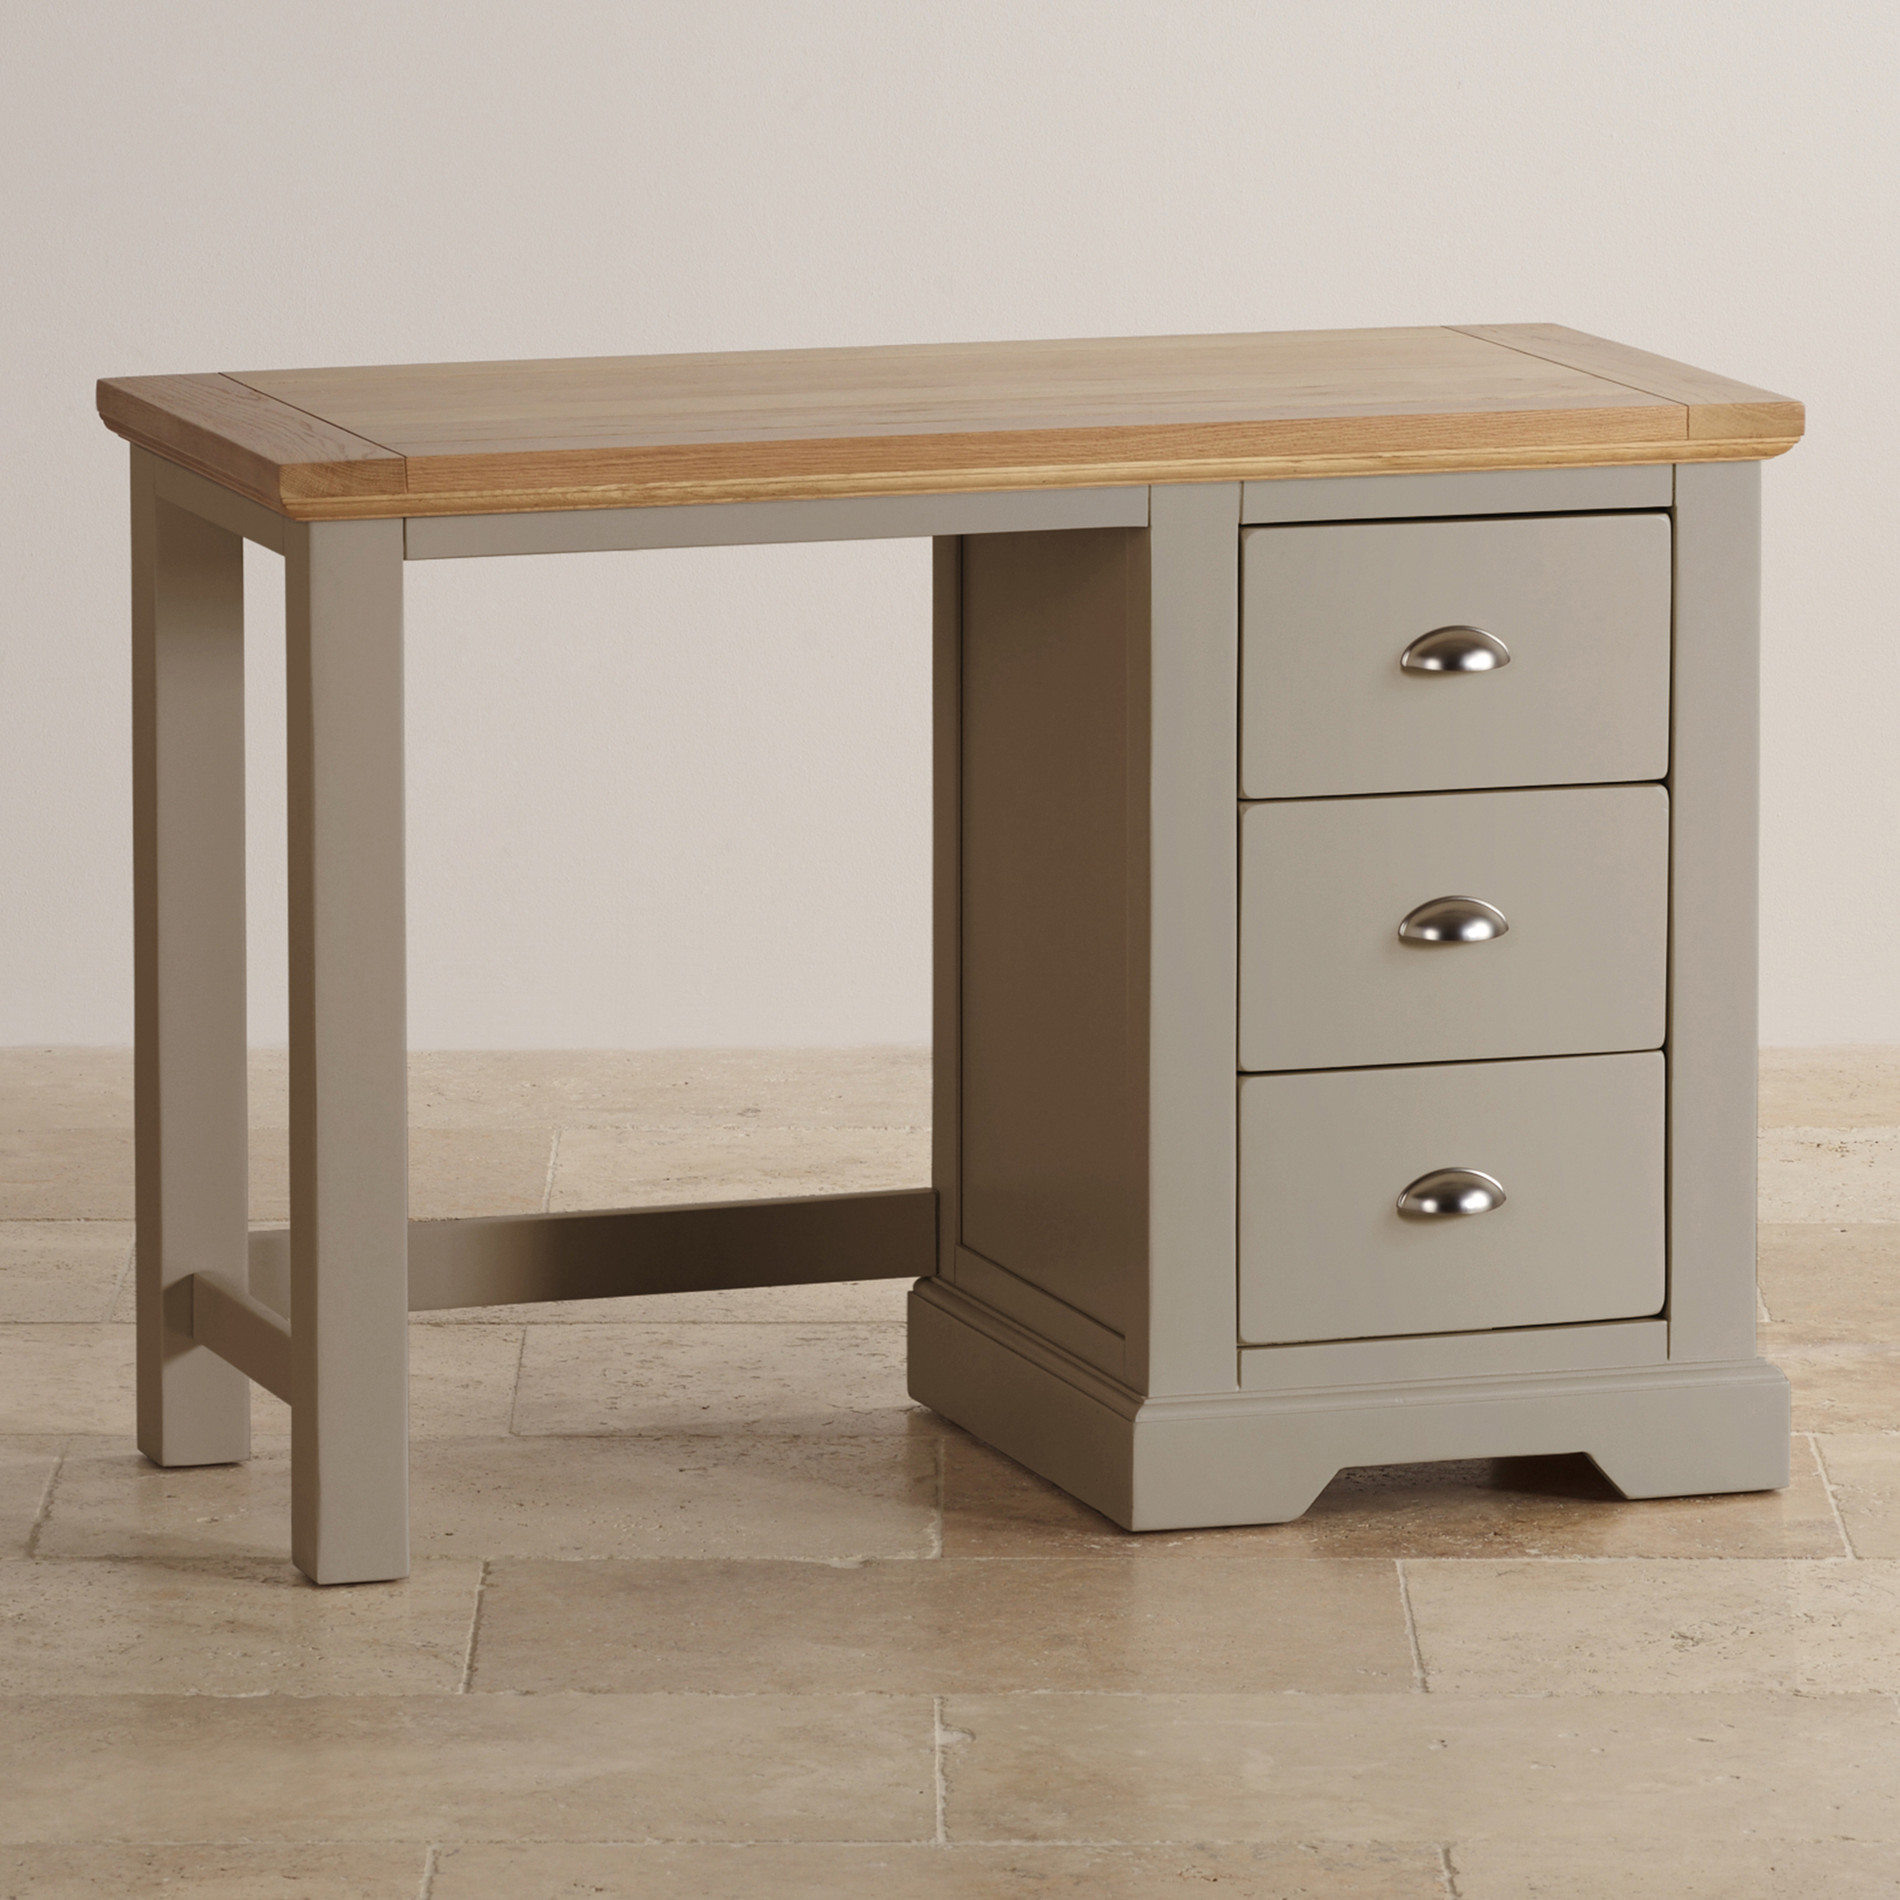 St ives grey dressing table in 100 solid hardwood for Dining table dressing